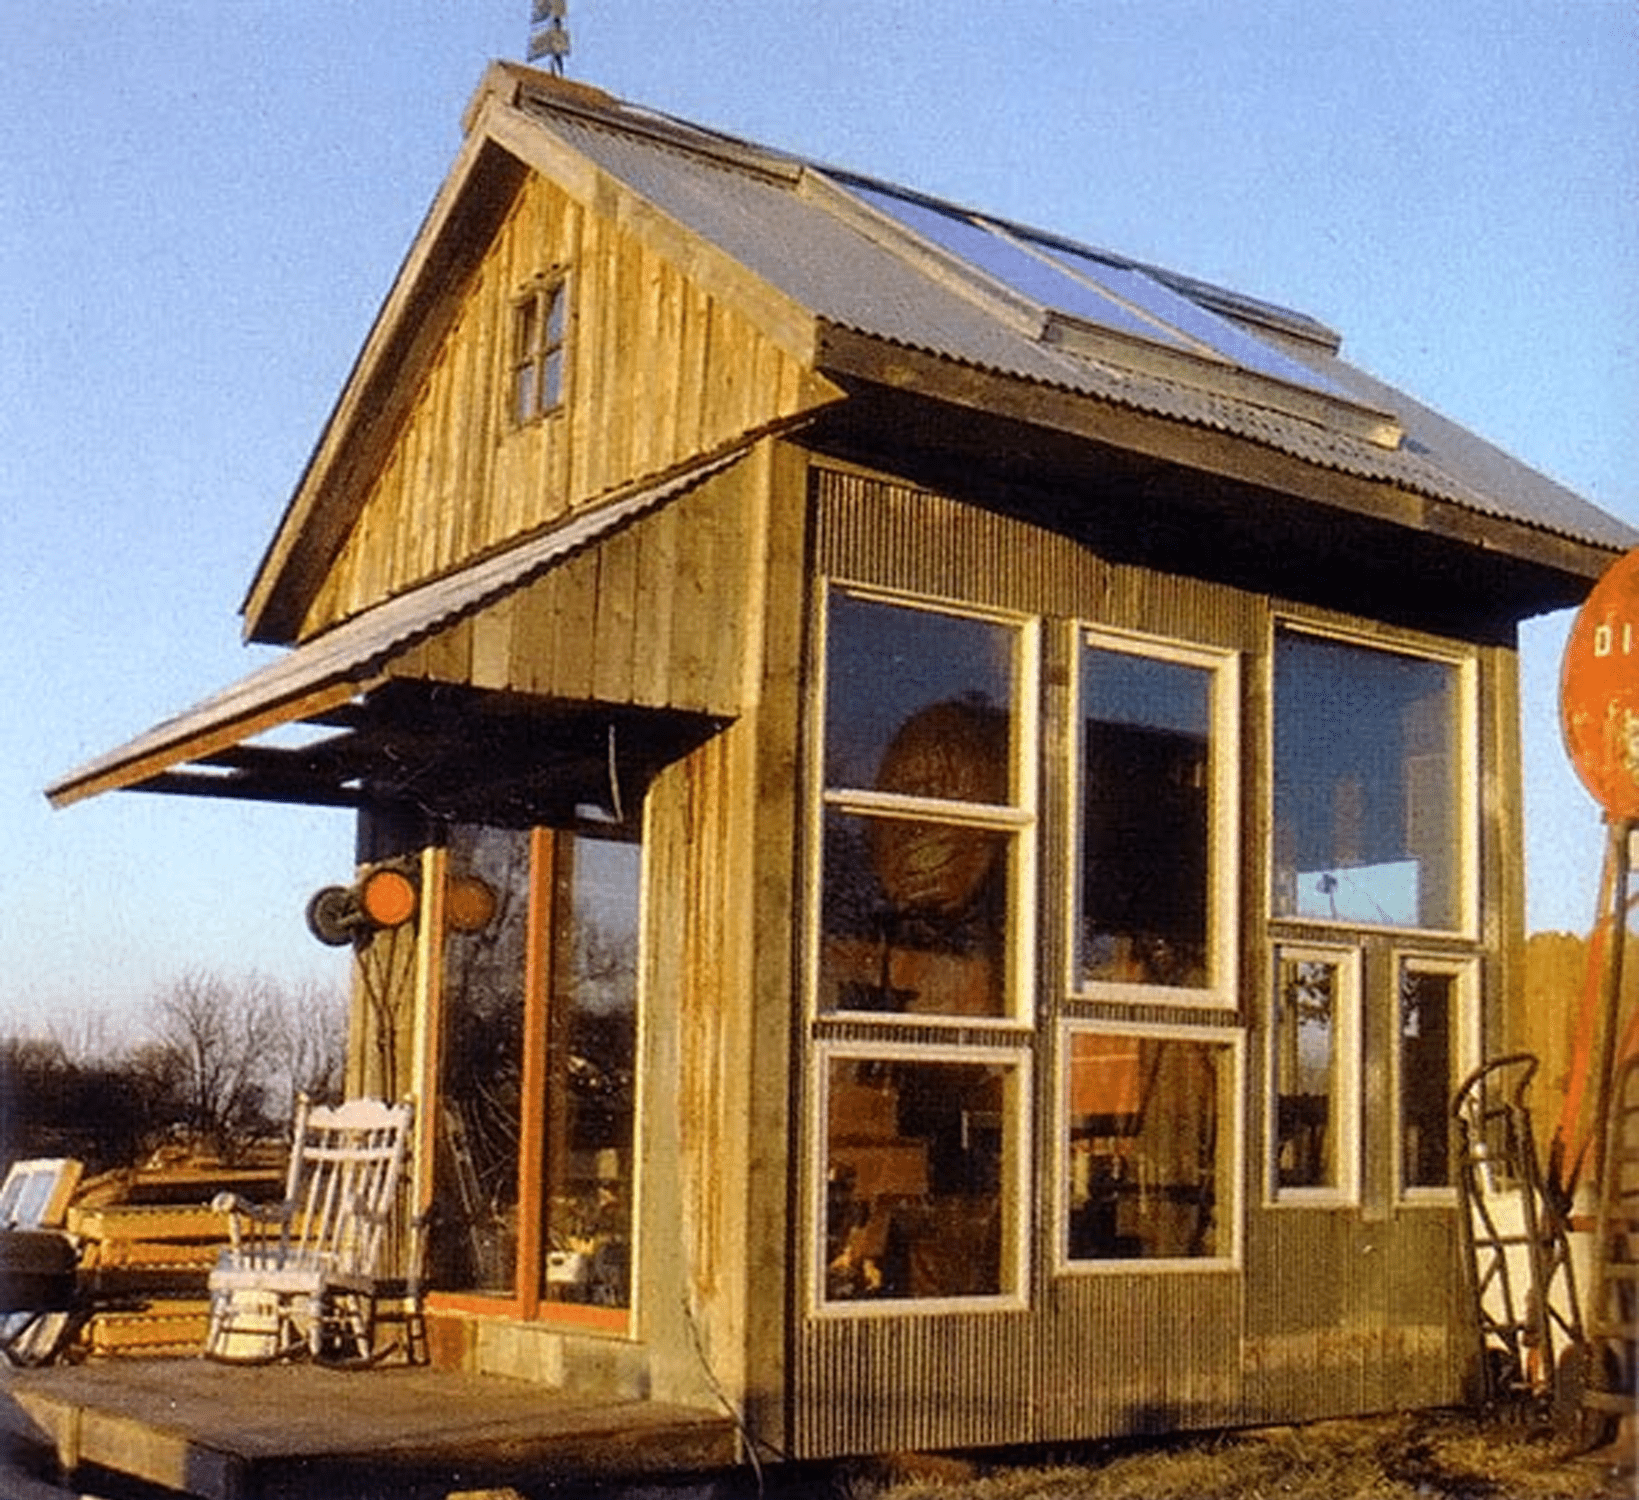 13 Free DIY Greenhouse Plans Greenhouse Design Plans Diions on greenhouse garden designs, wood greenhouse plans, easy greenhouse plans, big greenhouse plans, homemade greenhouse plans, attached greenhouse plans, small greenhouse plans, solar greenhouse plans, a-frame greenhouse plans, lean to greenhouse plans, greenhouse architecture, pvc greenhouse plans, winter greenhouse plans, hobby greenhouse plans, greenhouse layout, backyard greenhouse plans, greenhouse cabinets, diy greenhouse plans, greenhouse ideas, greenhouse windows,